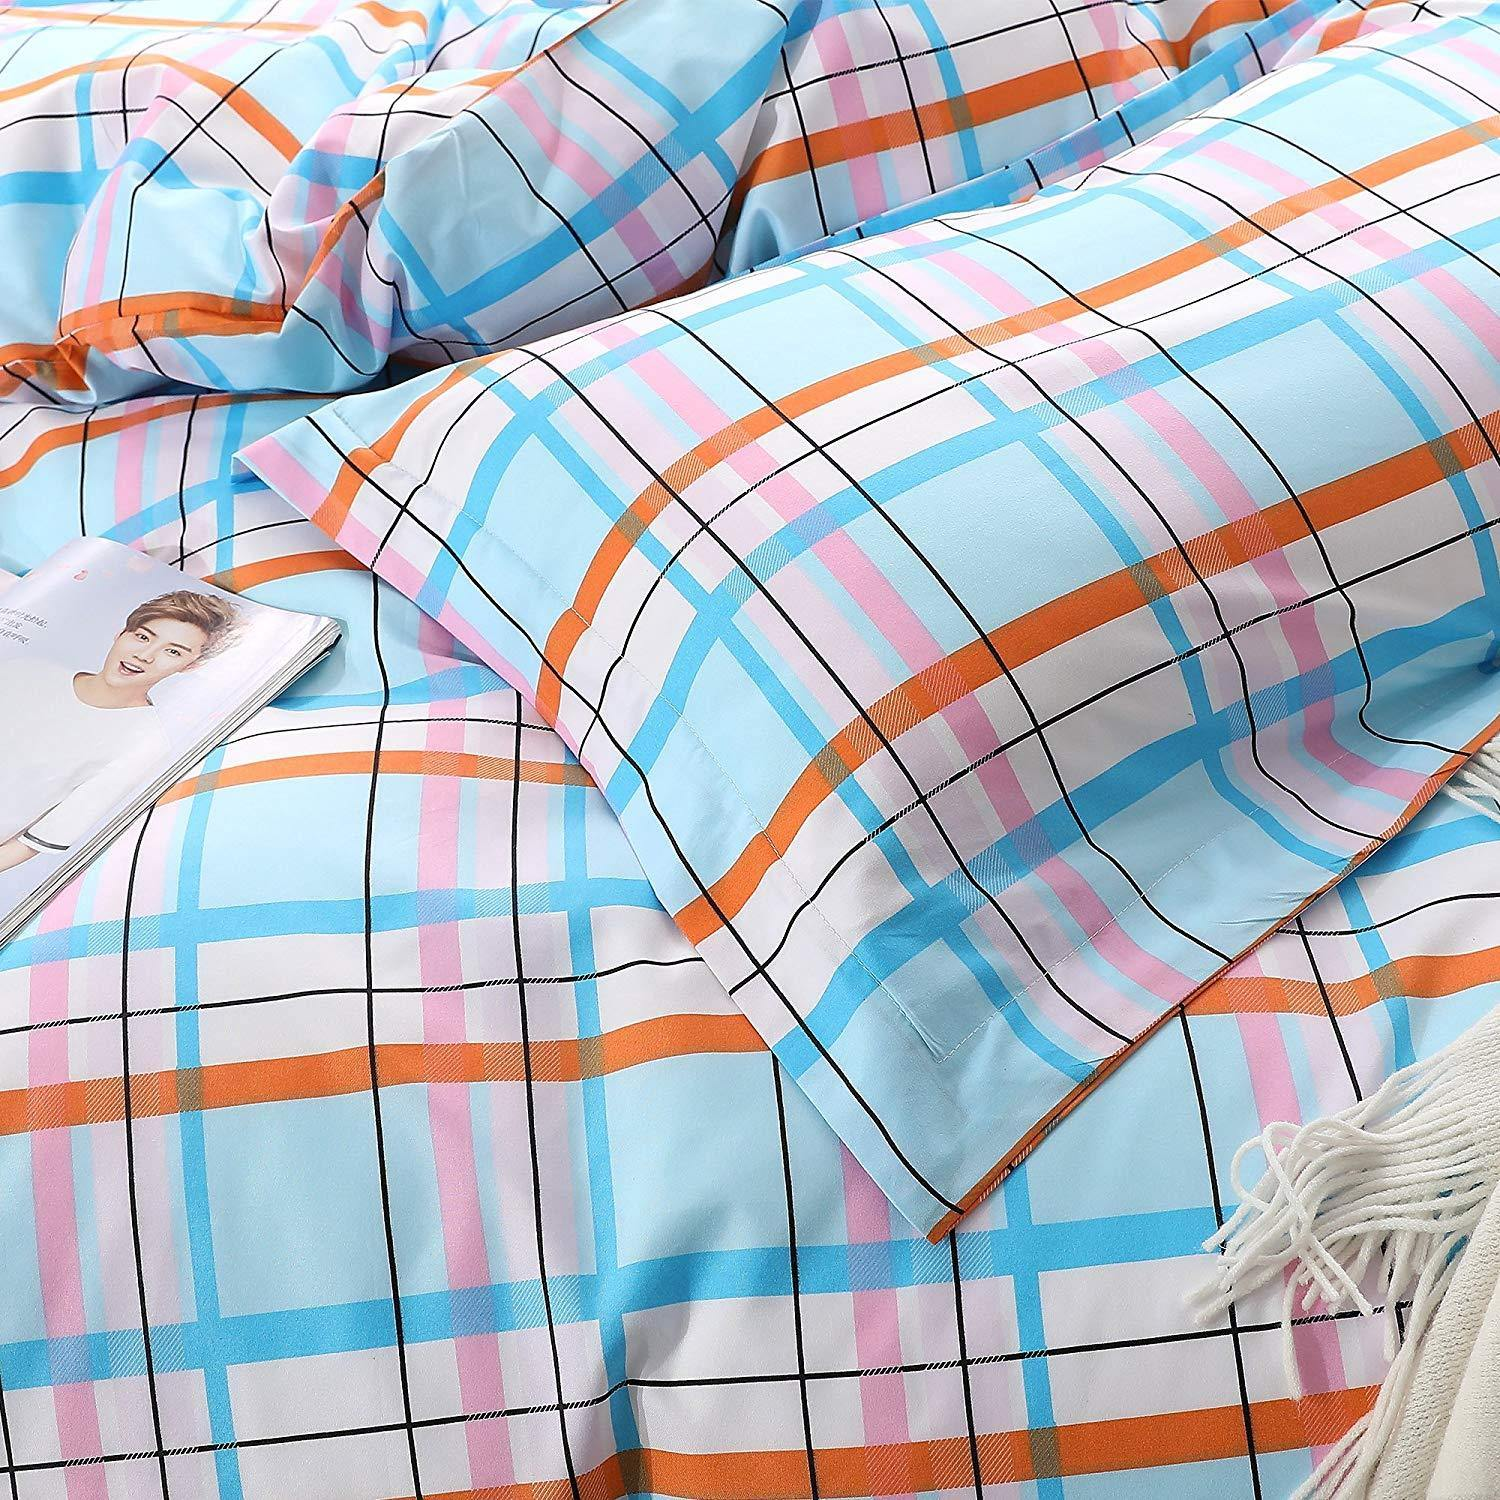 NTBAY 3 Pieces Duvet Cover Set, Brushed Microfiber, Plaid Patterns Printed, Bedding, Blue and Pink - NTBAY